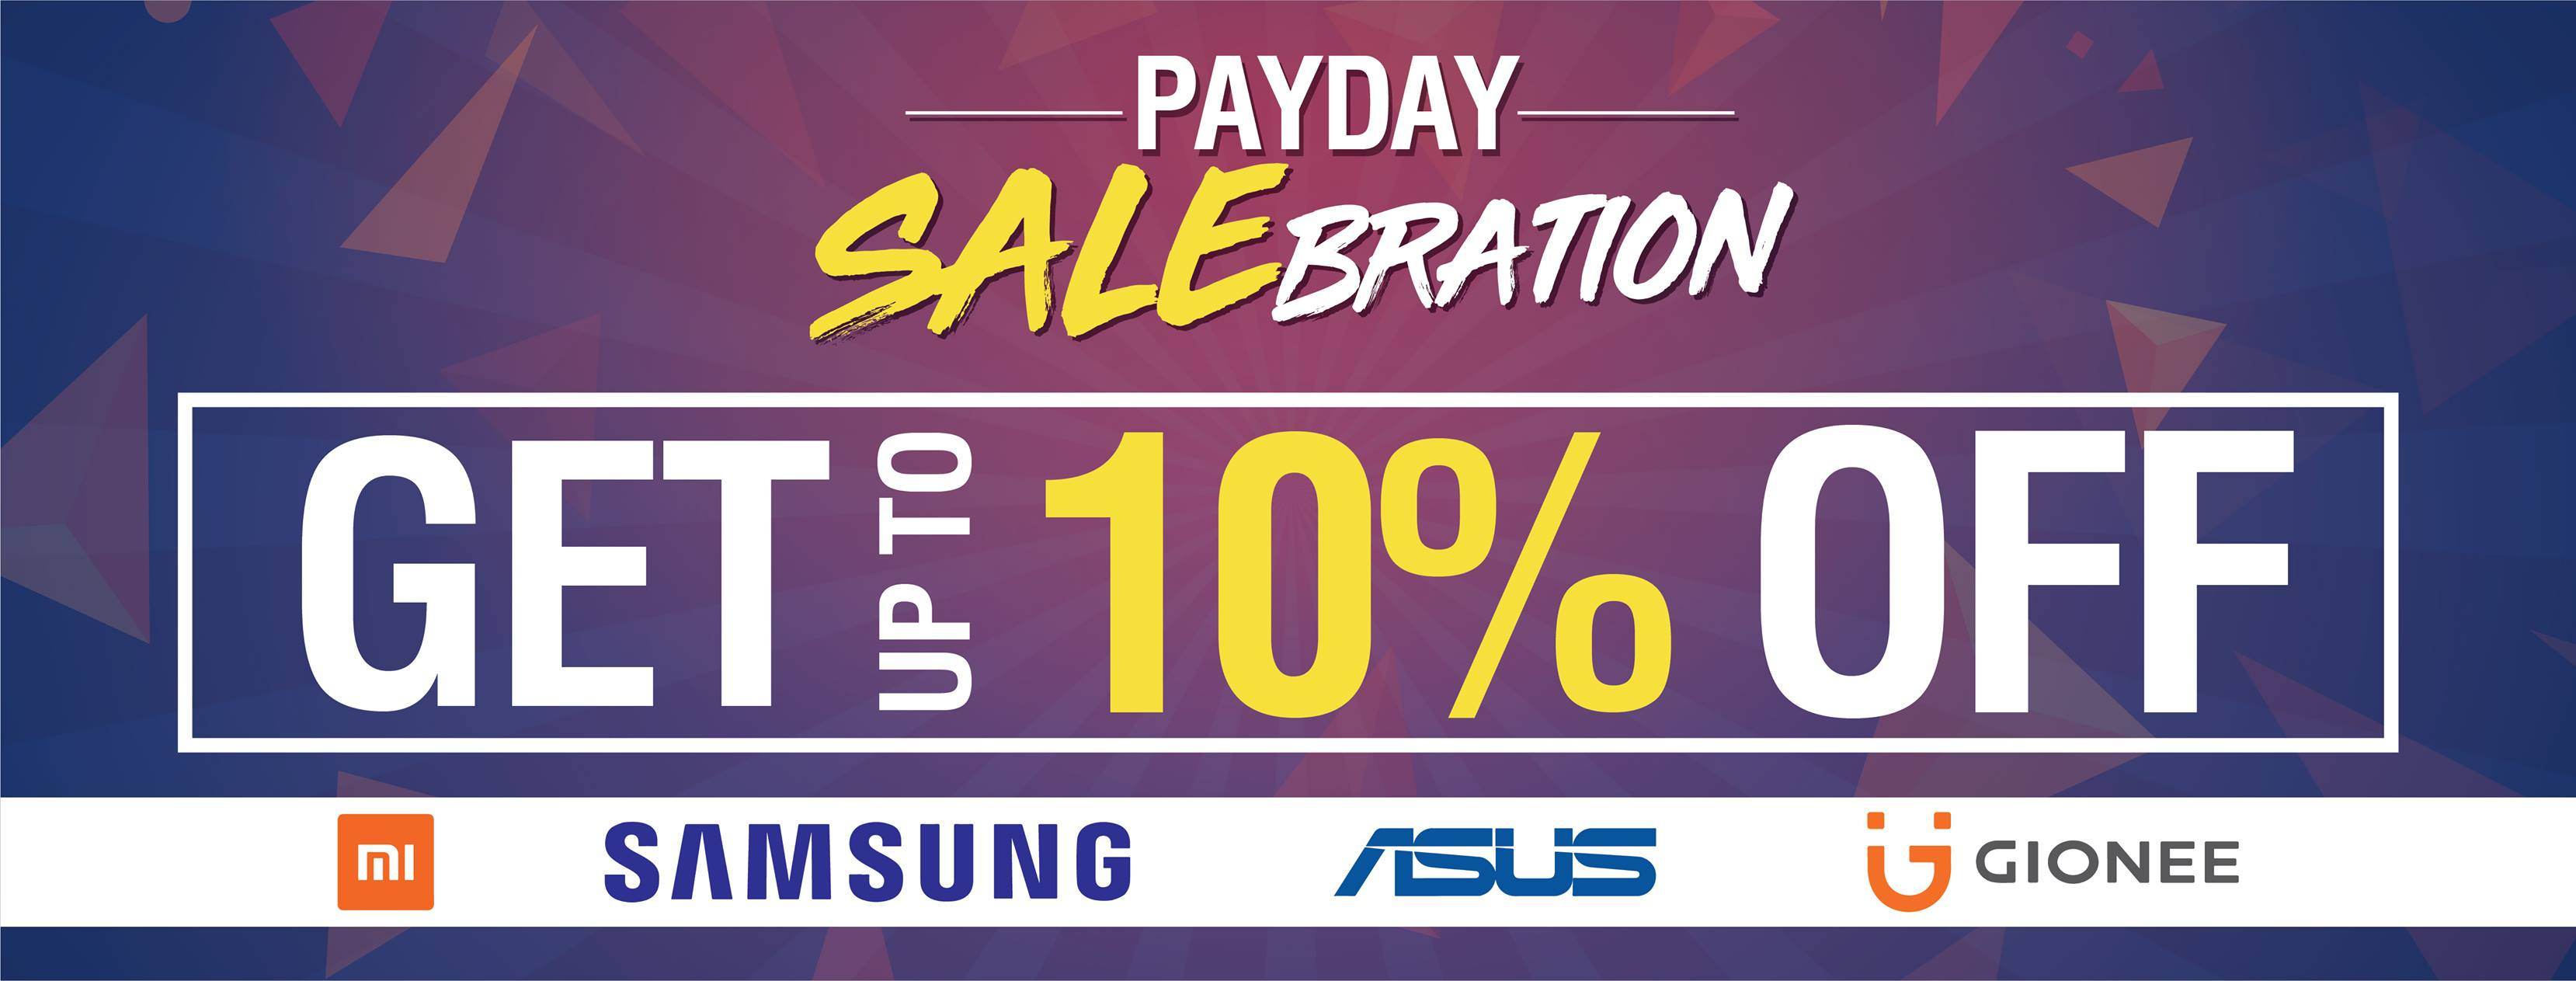 42656903 467097537130285 1585771216390586368 o - Android Zone announces Payday Salebration, up 10% off on selected products!